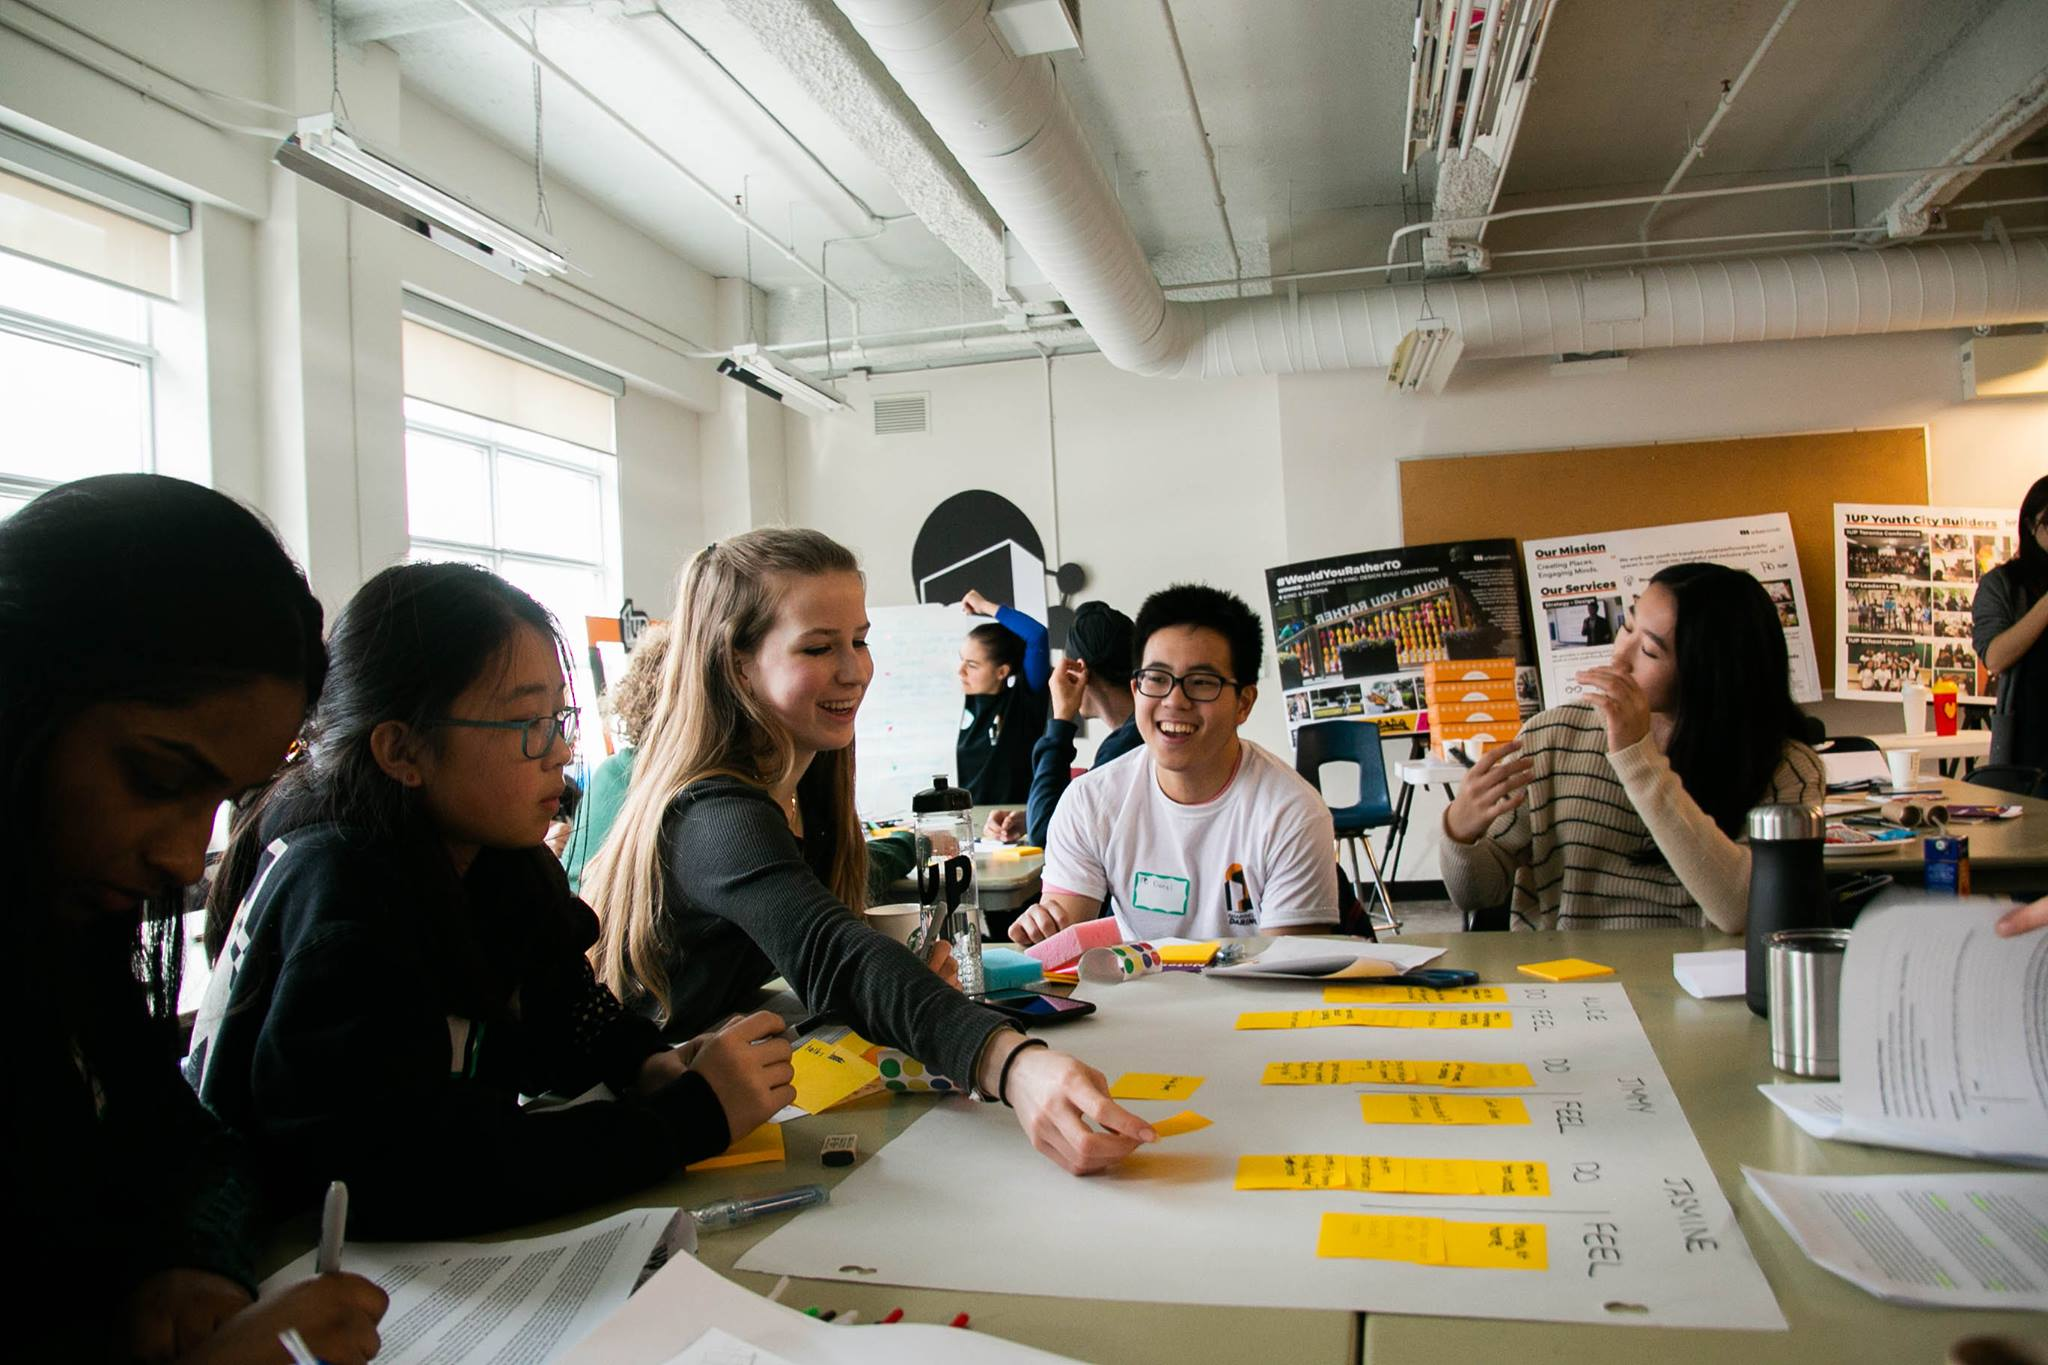 Students participate in the design jam. Image: Urban Minds